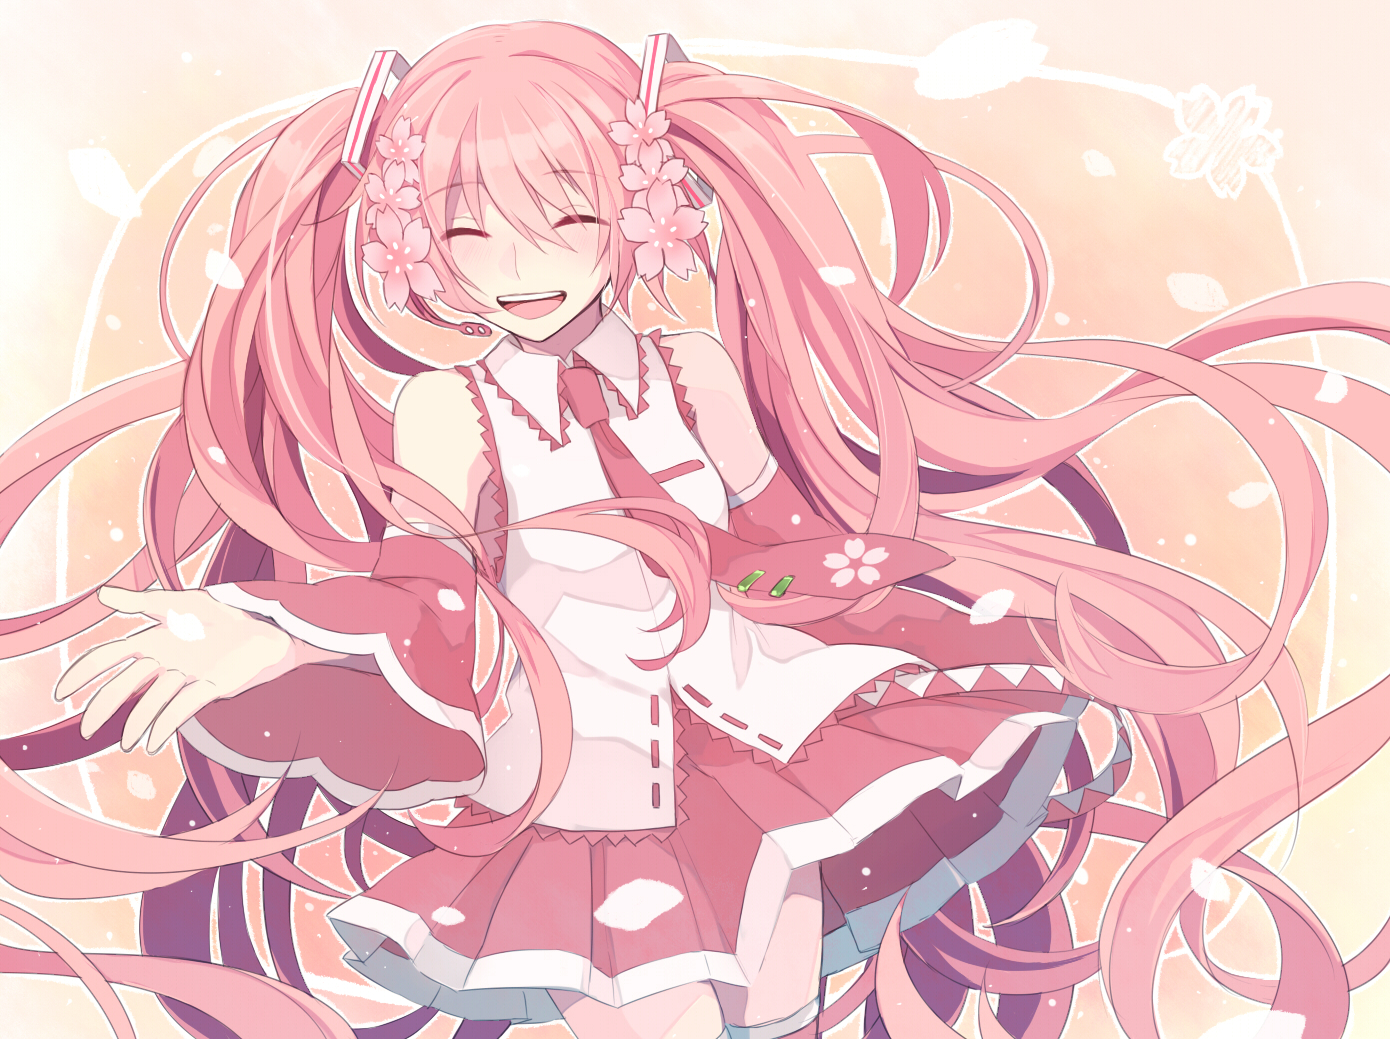 Fall Anime Wallpaper Vocaloid Dphones Hoshiyui Tsukino Long Hair Petals Pink